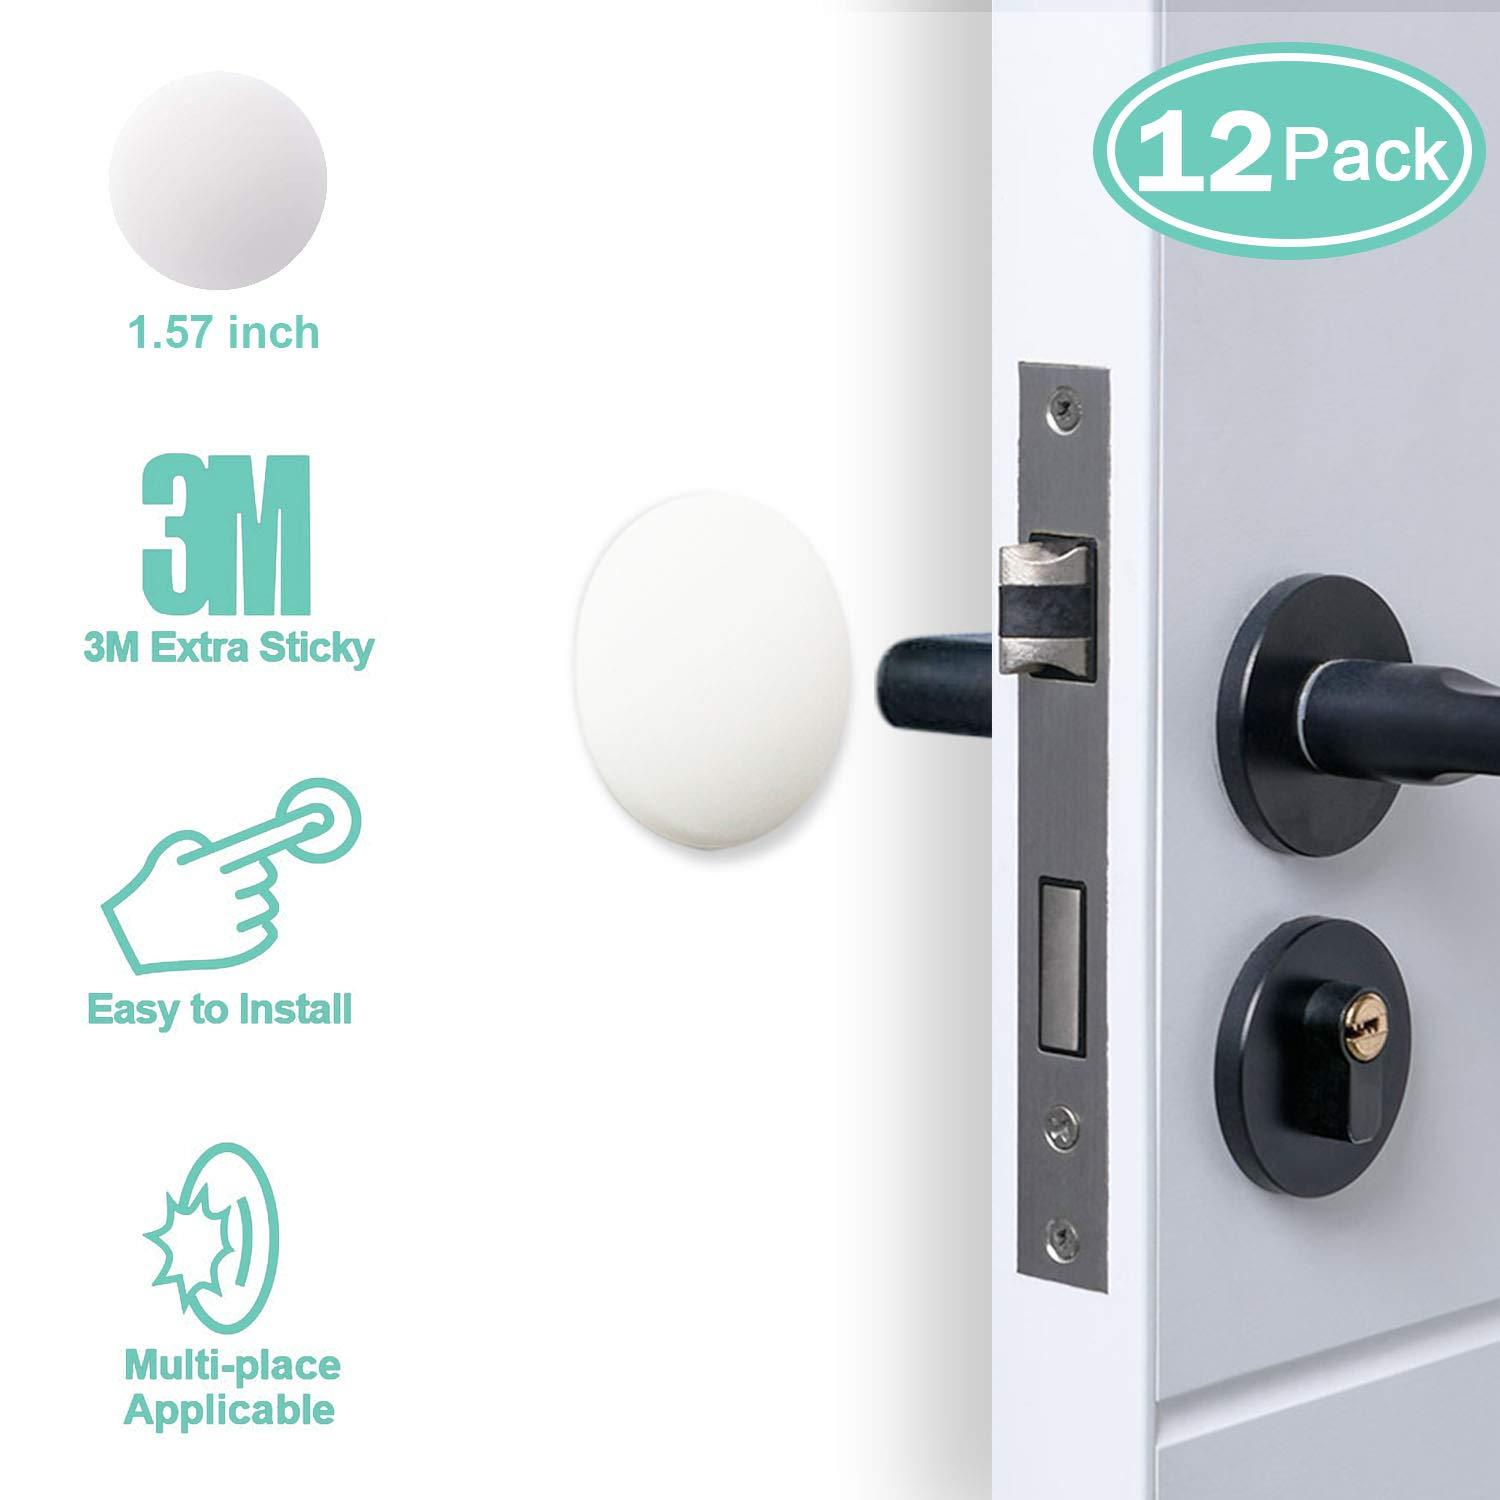 "Door Stopper Wall Protector (12 Pack), 1.57"" Door Stopper Bumper Door Knob Guard Silicon 3M Self Adhesive Prevent Damage to Wall, Doorknobs, Refrigerator Door, White"